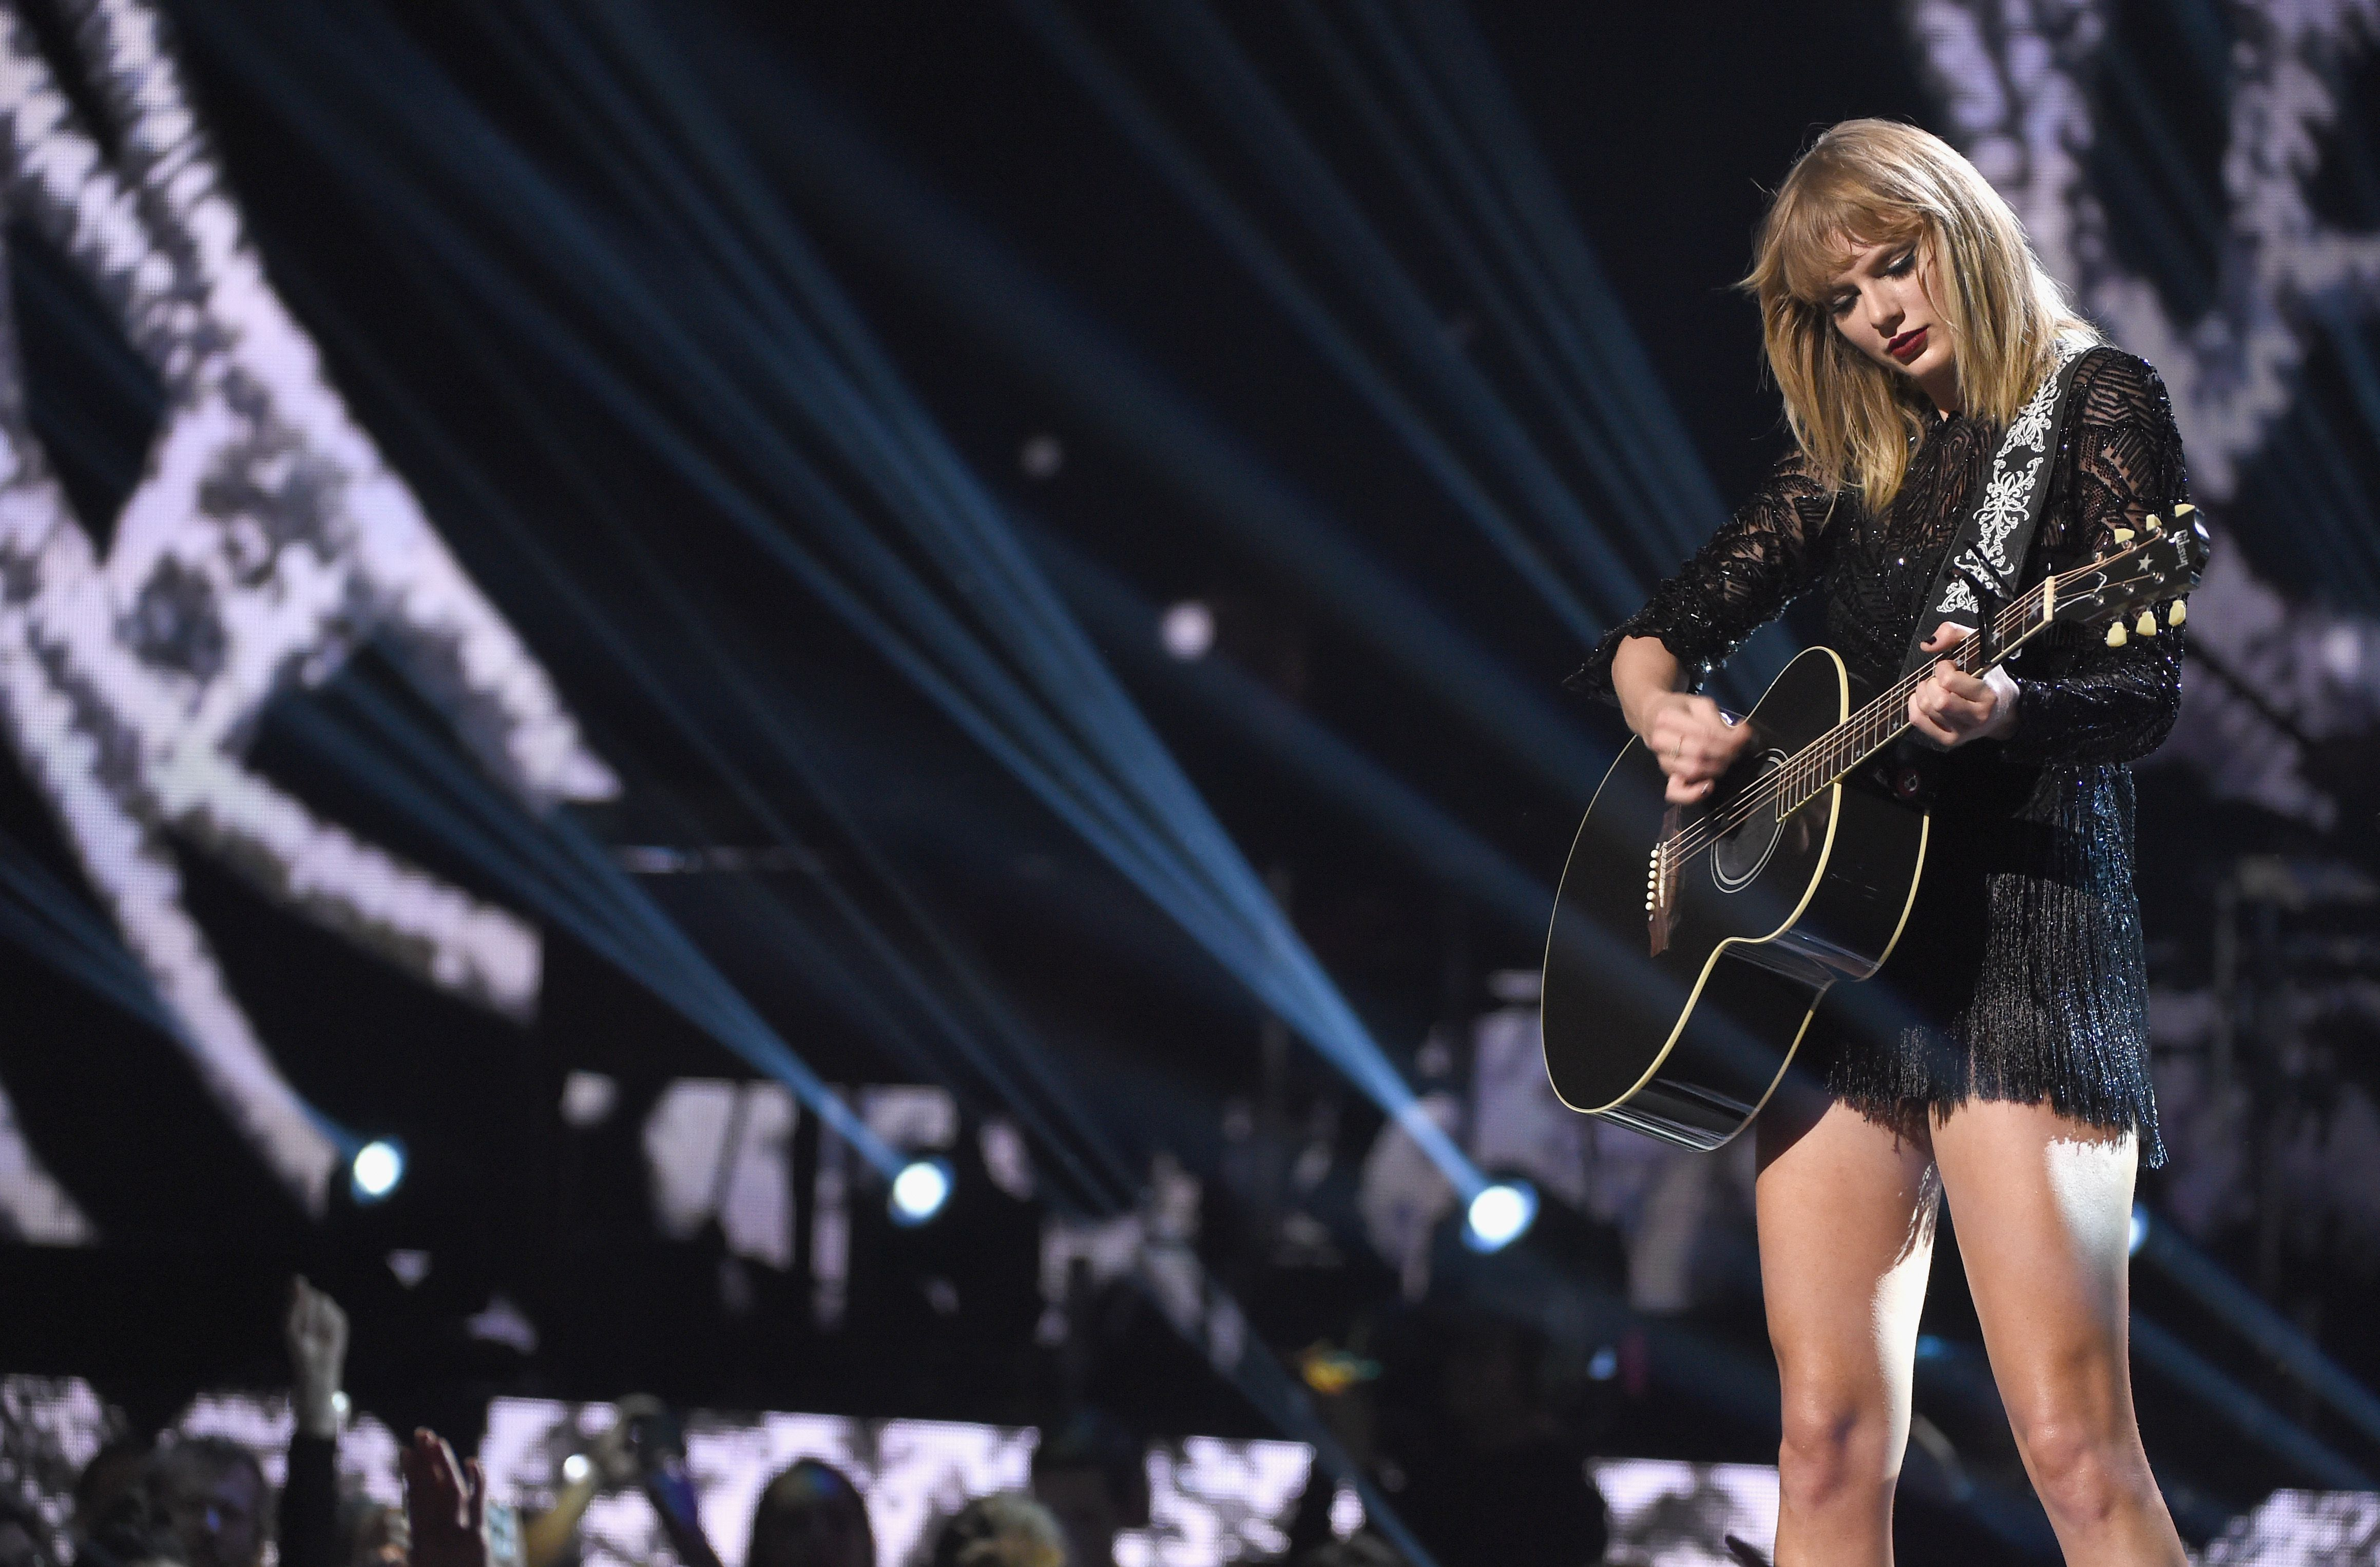 Taylor swift chords lyrics includes tim mcgraw taylor swift chords 2017 directv now super saturday night concert in houston taylor swift performance hexwebz Images